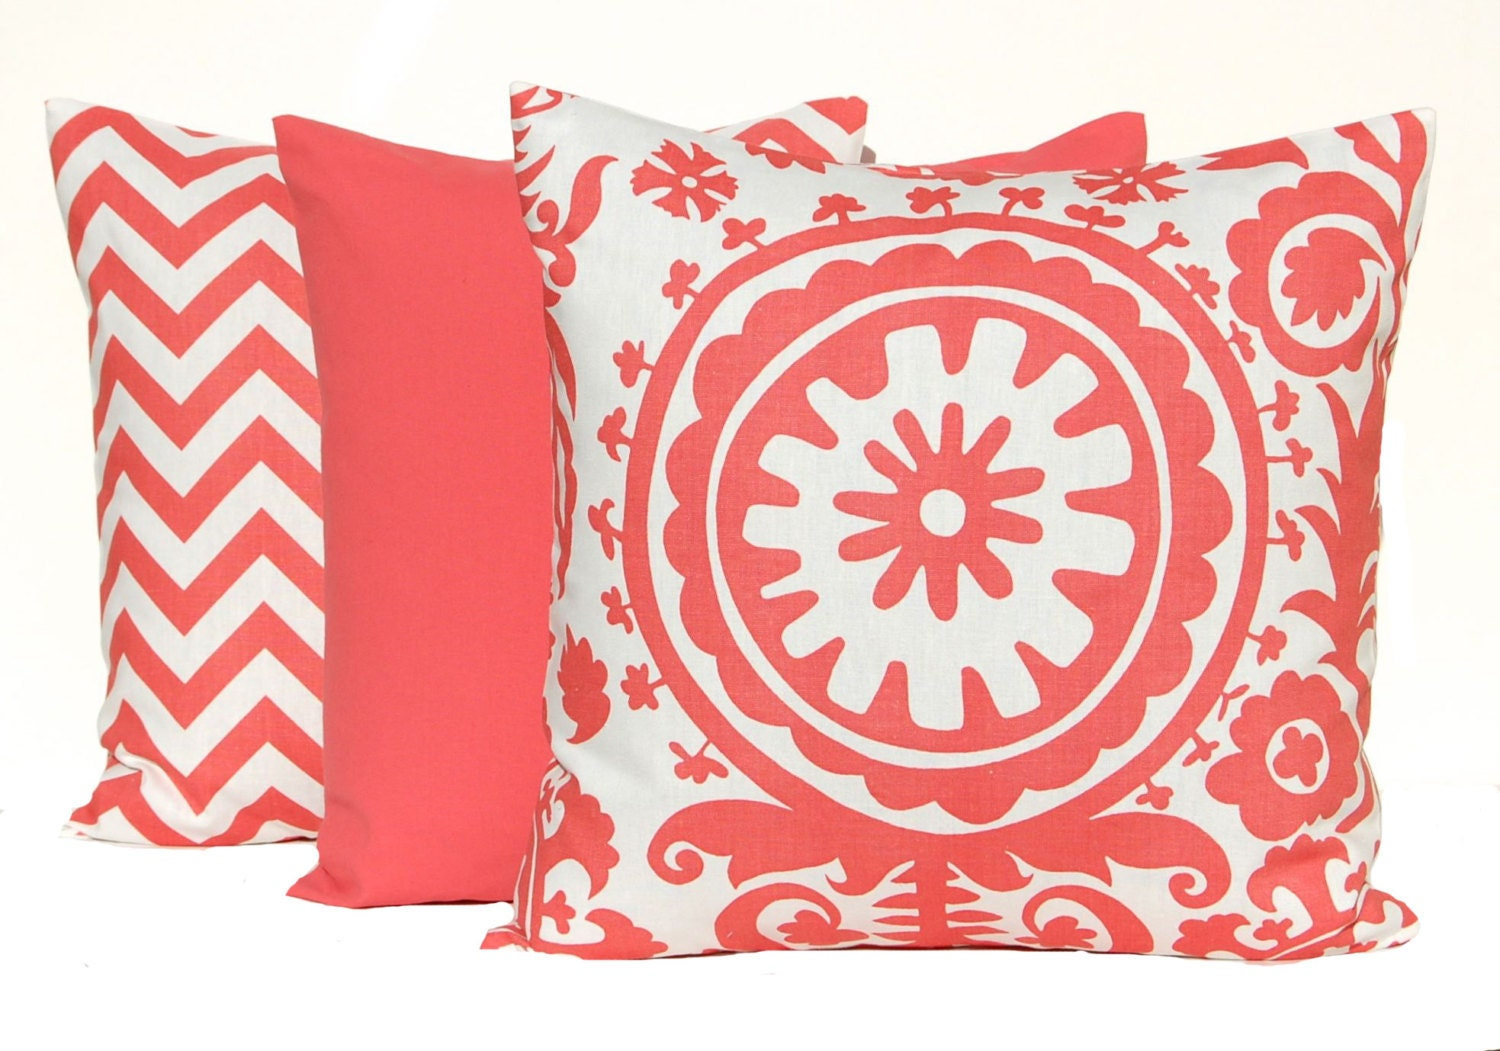 Decorative Throw Pillows Etsy : Coral Pillows Decorative Throw Pillow Covers by FestiveHomeDecor